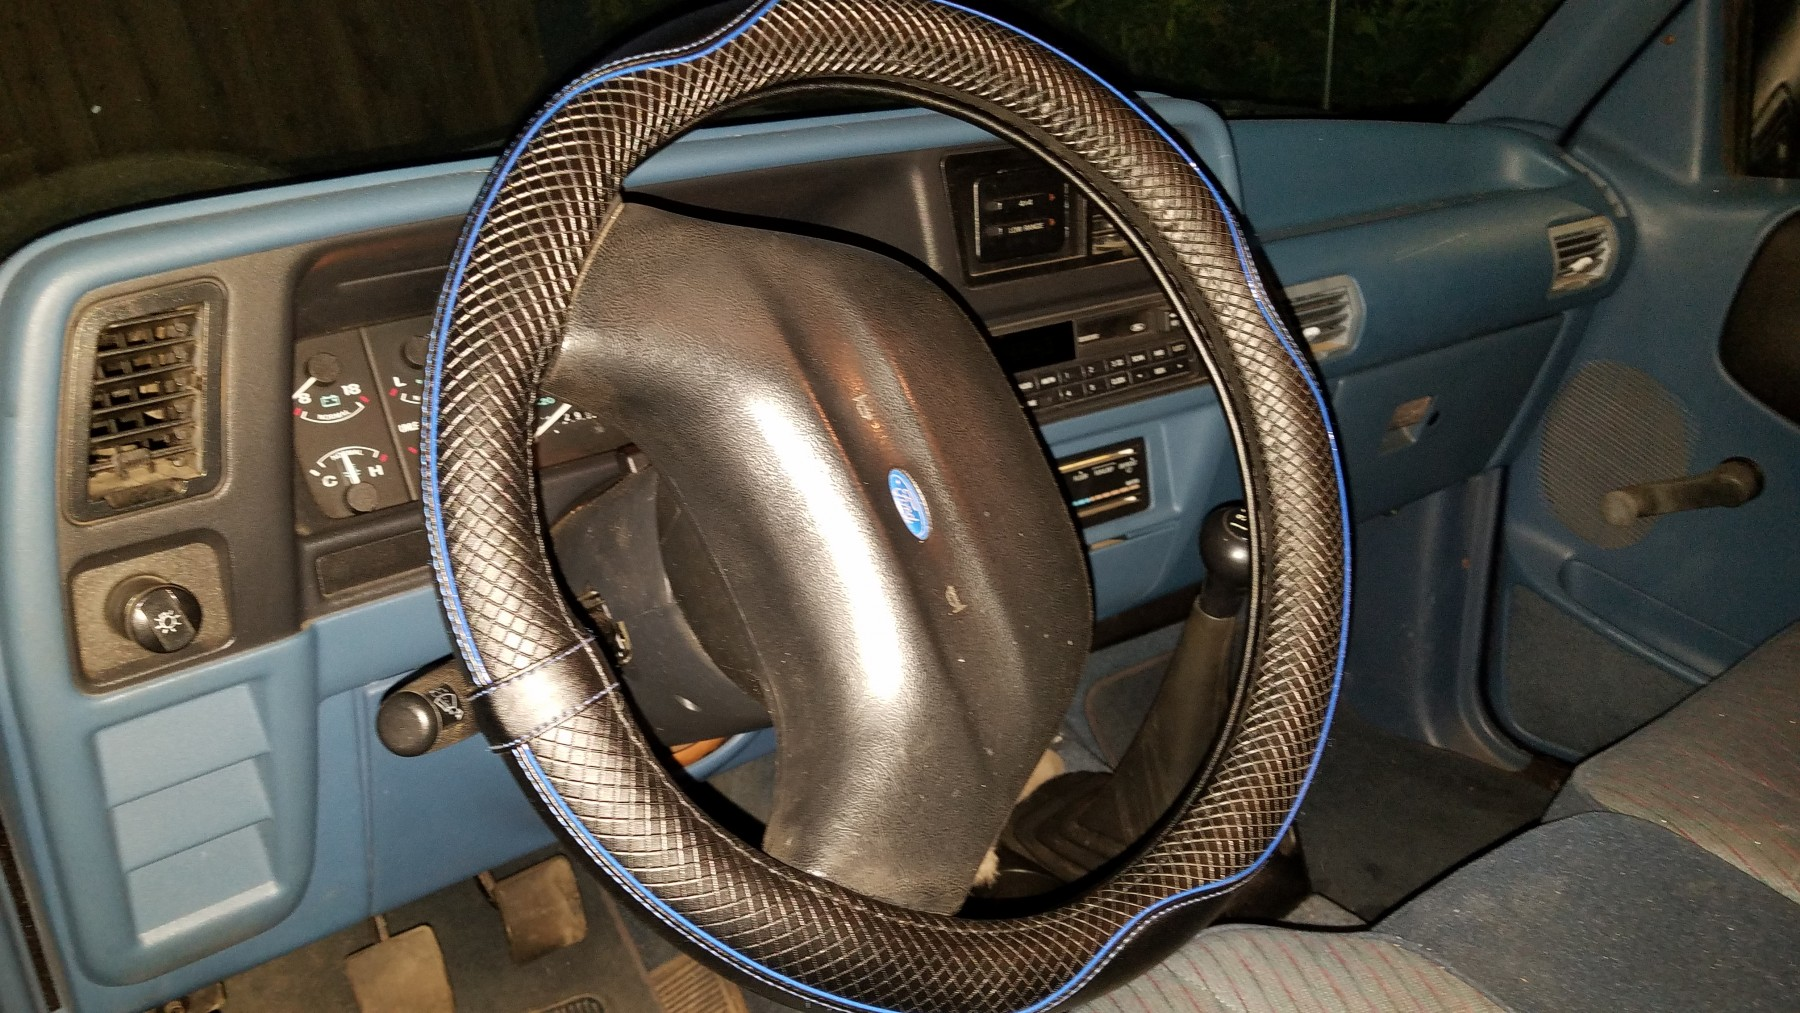 Good quality and neat steering wheel cover